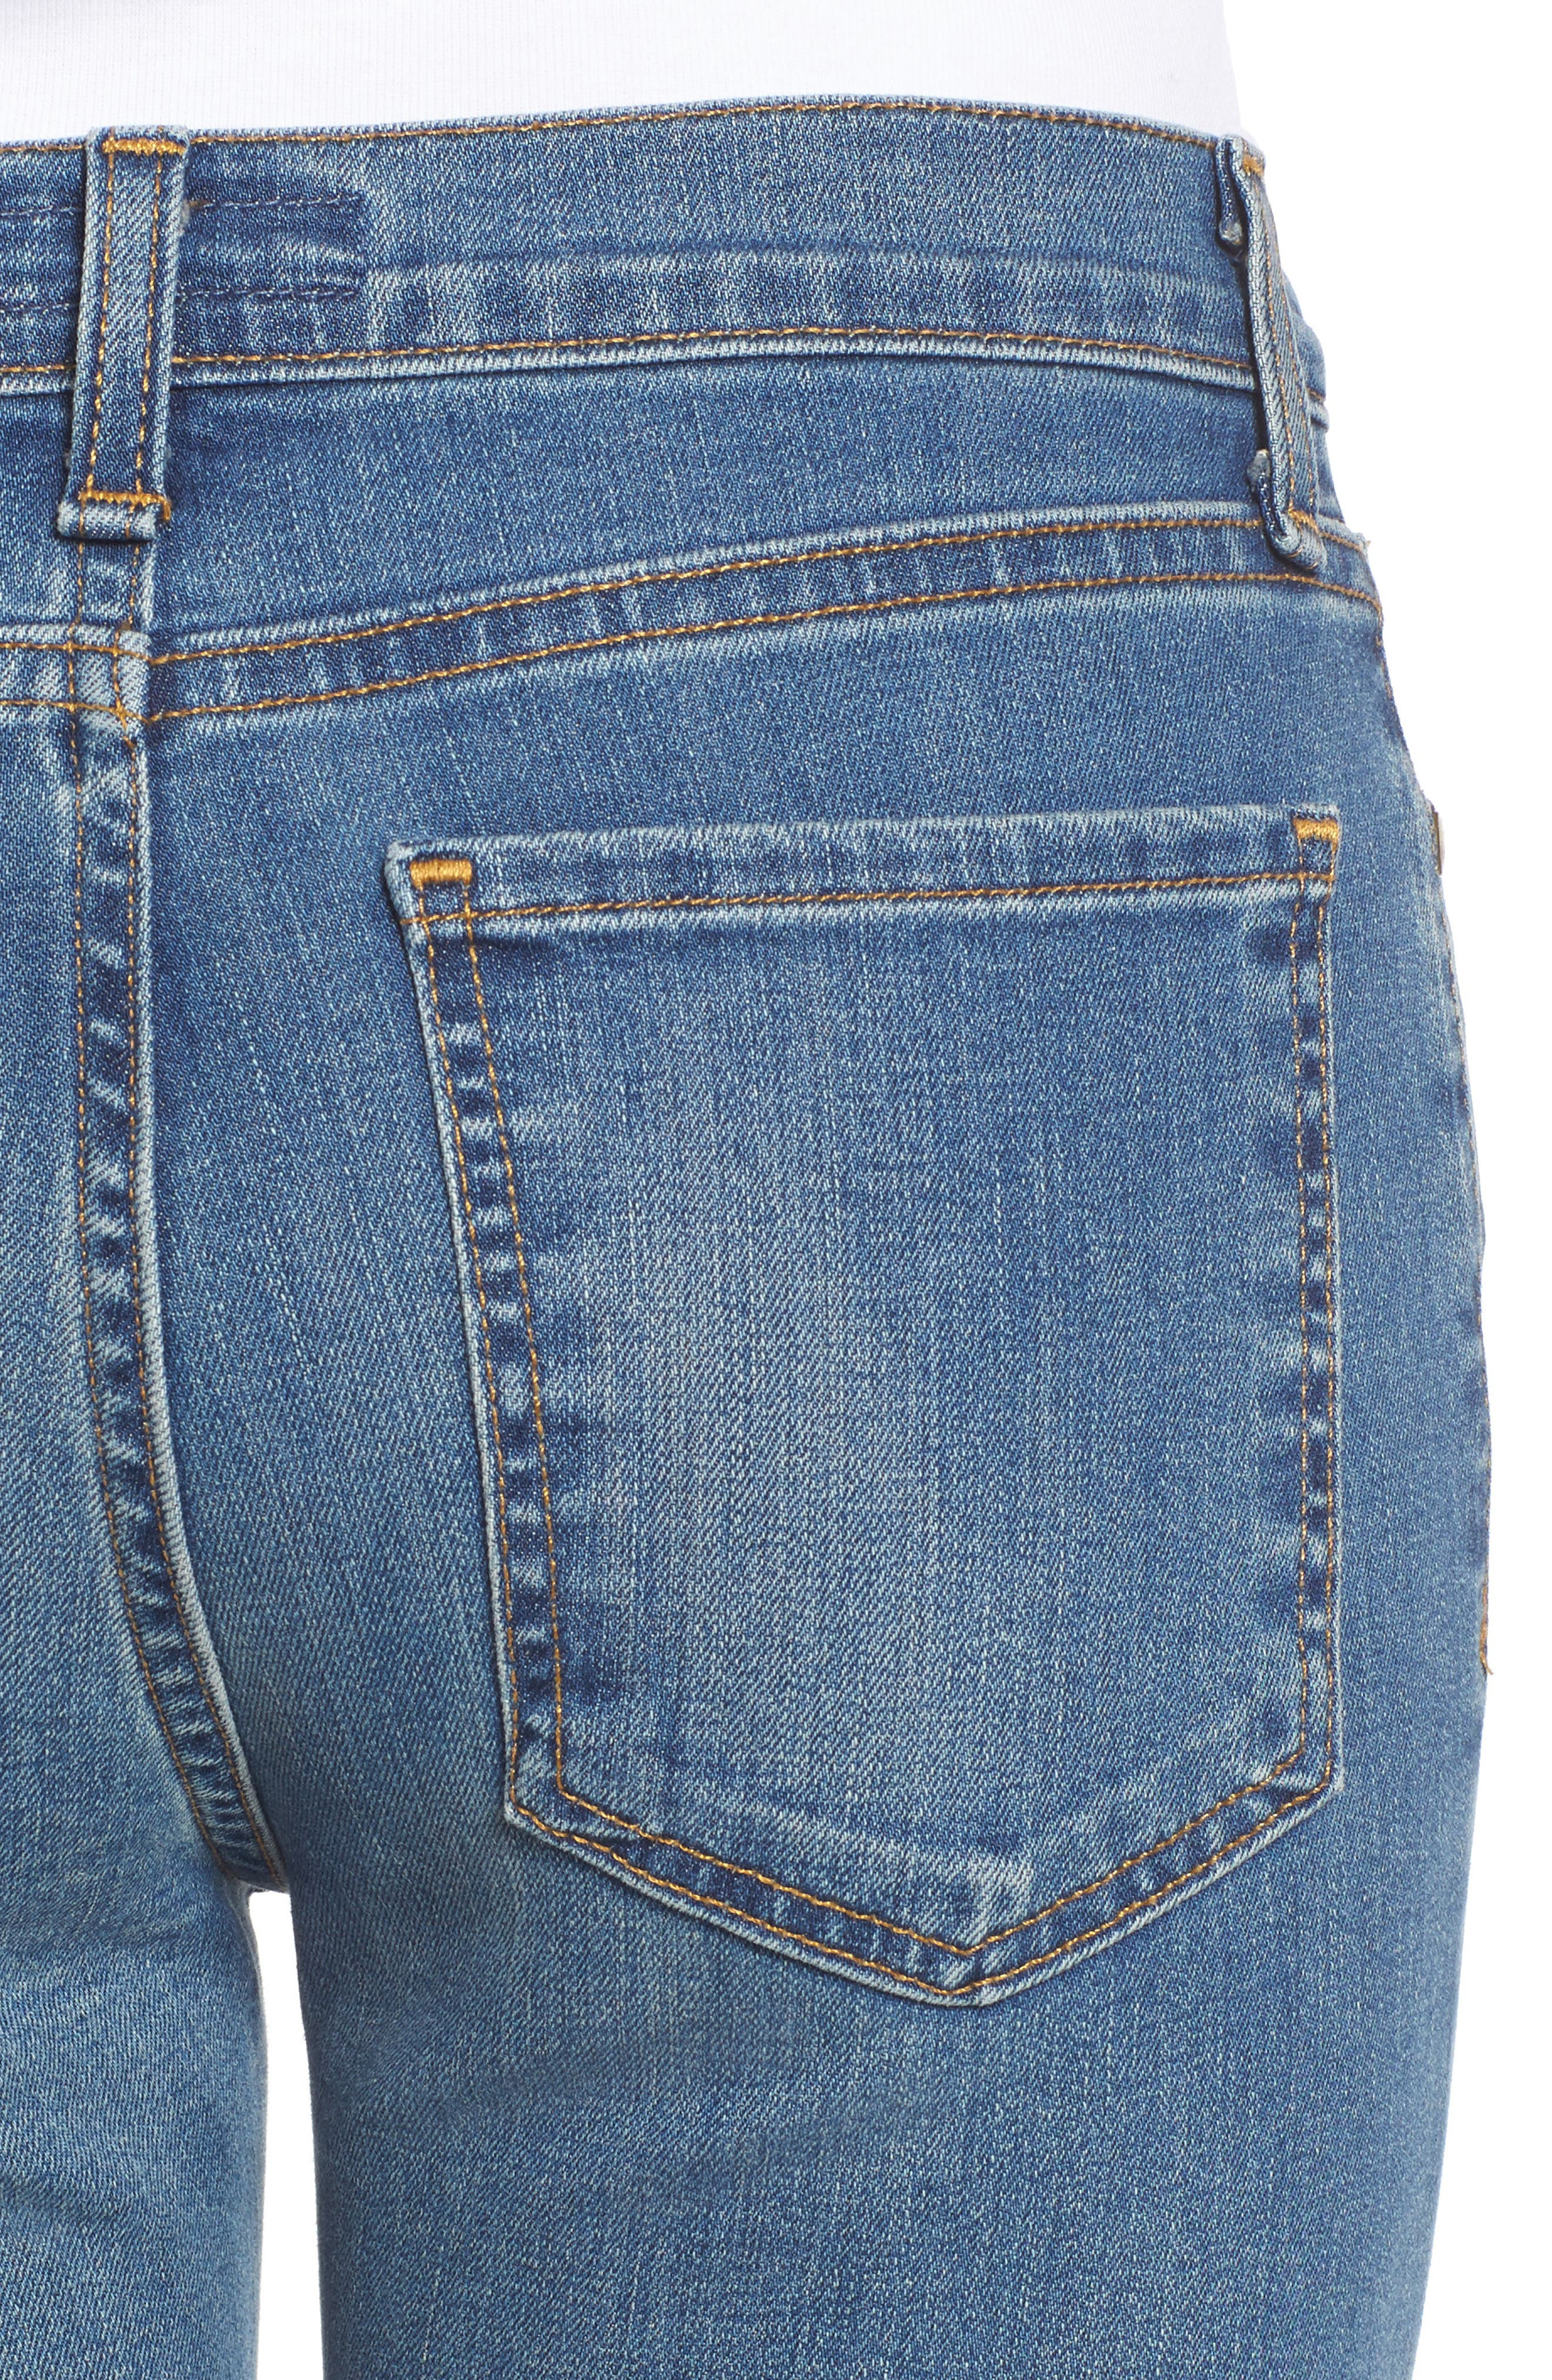 Crop Flare Jeans,                             Alternate thumbnail 4, color,                             420